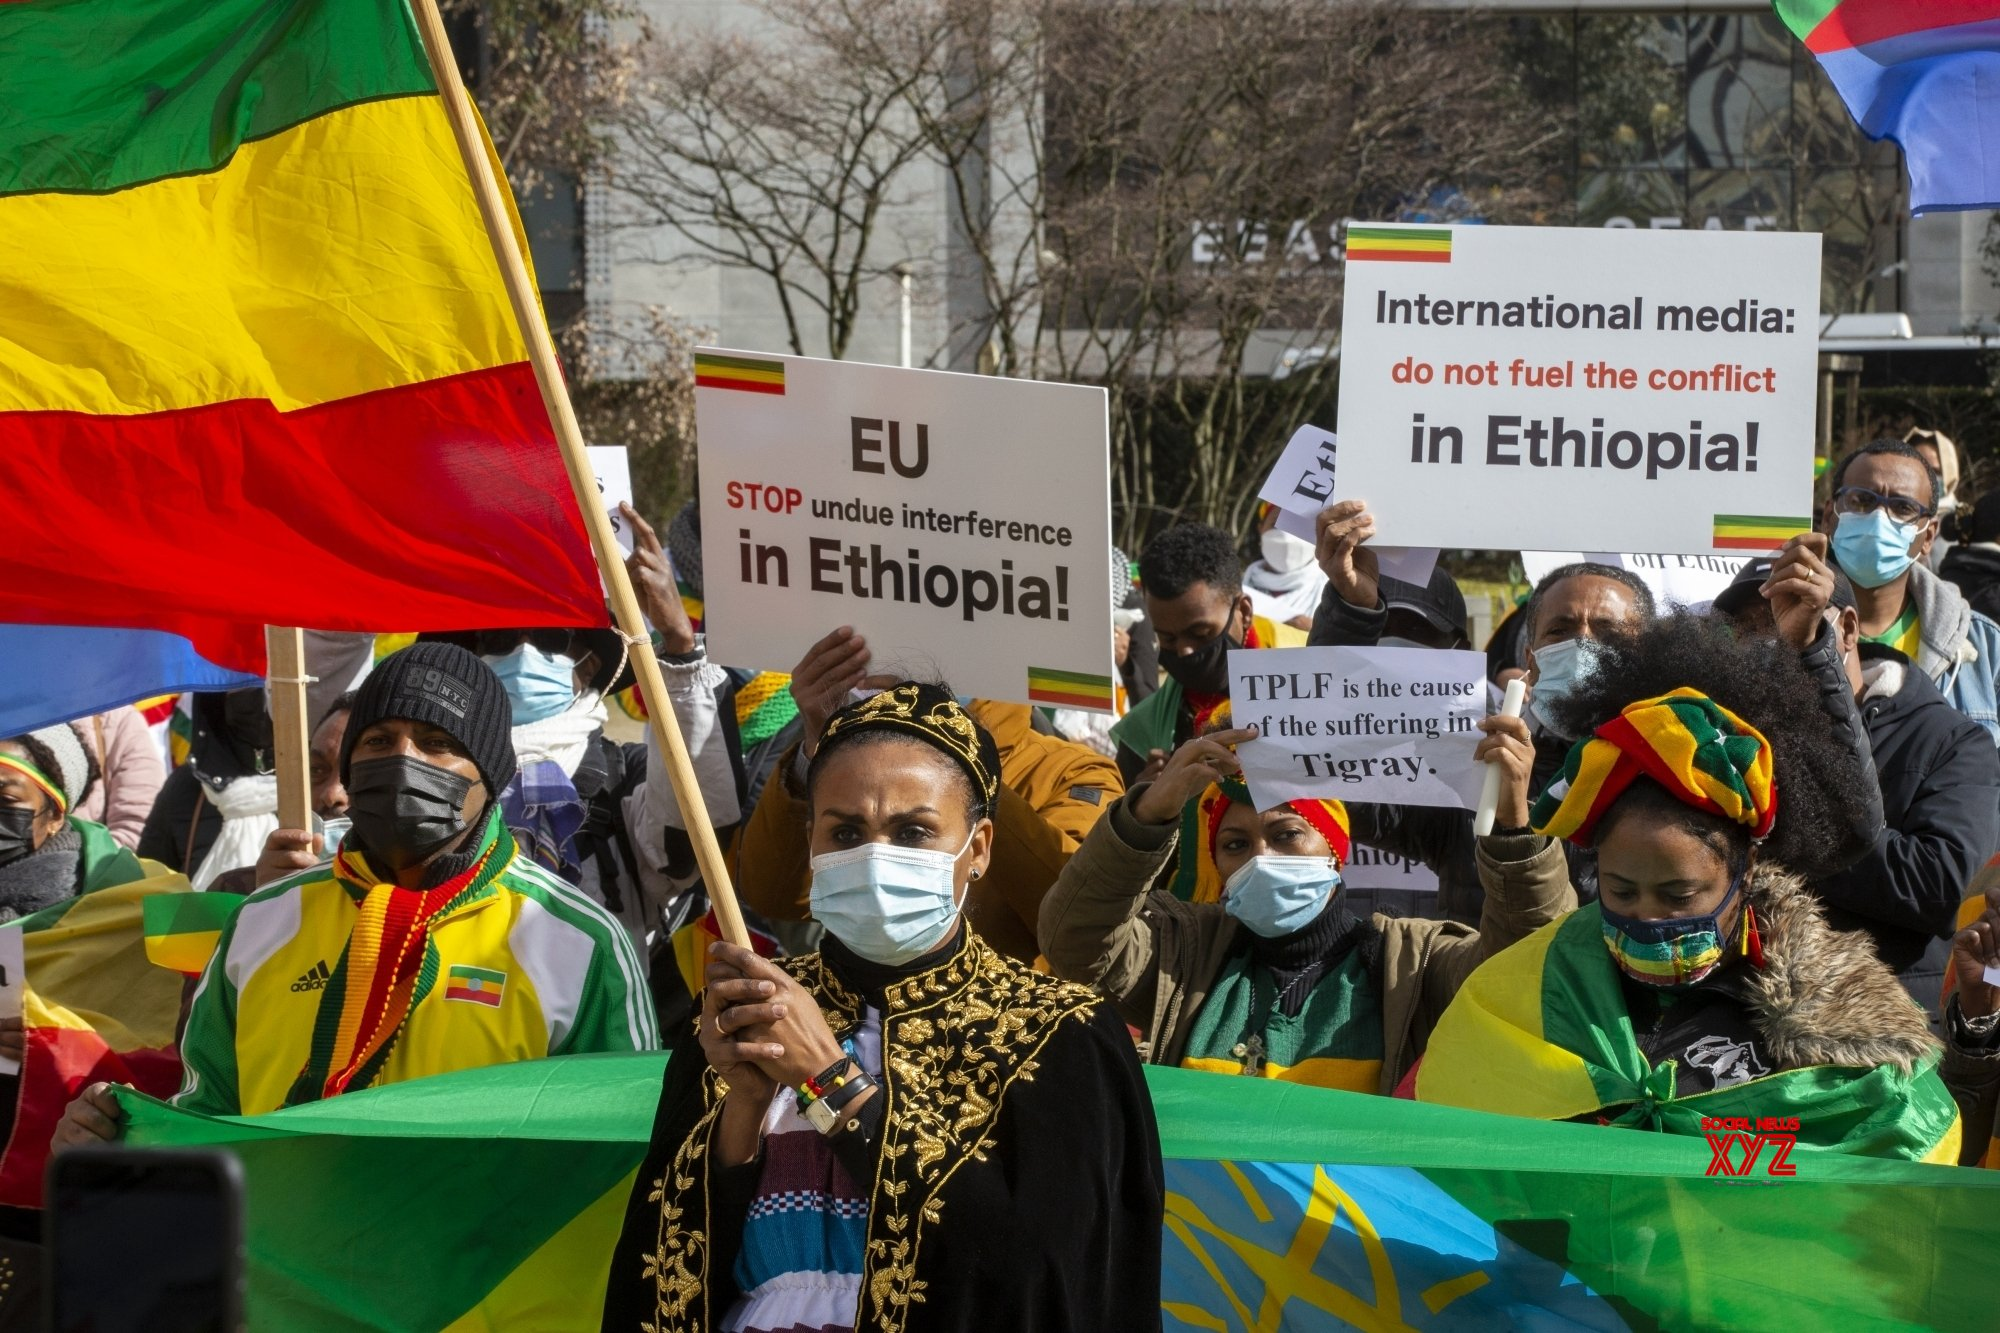 US expresses concern over Tigray crisis